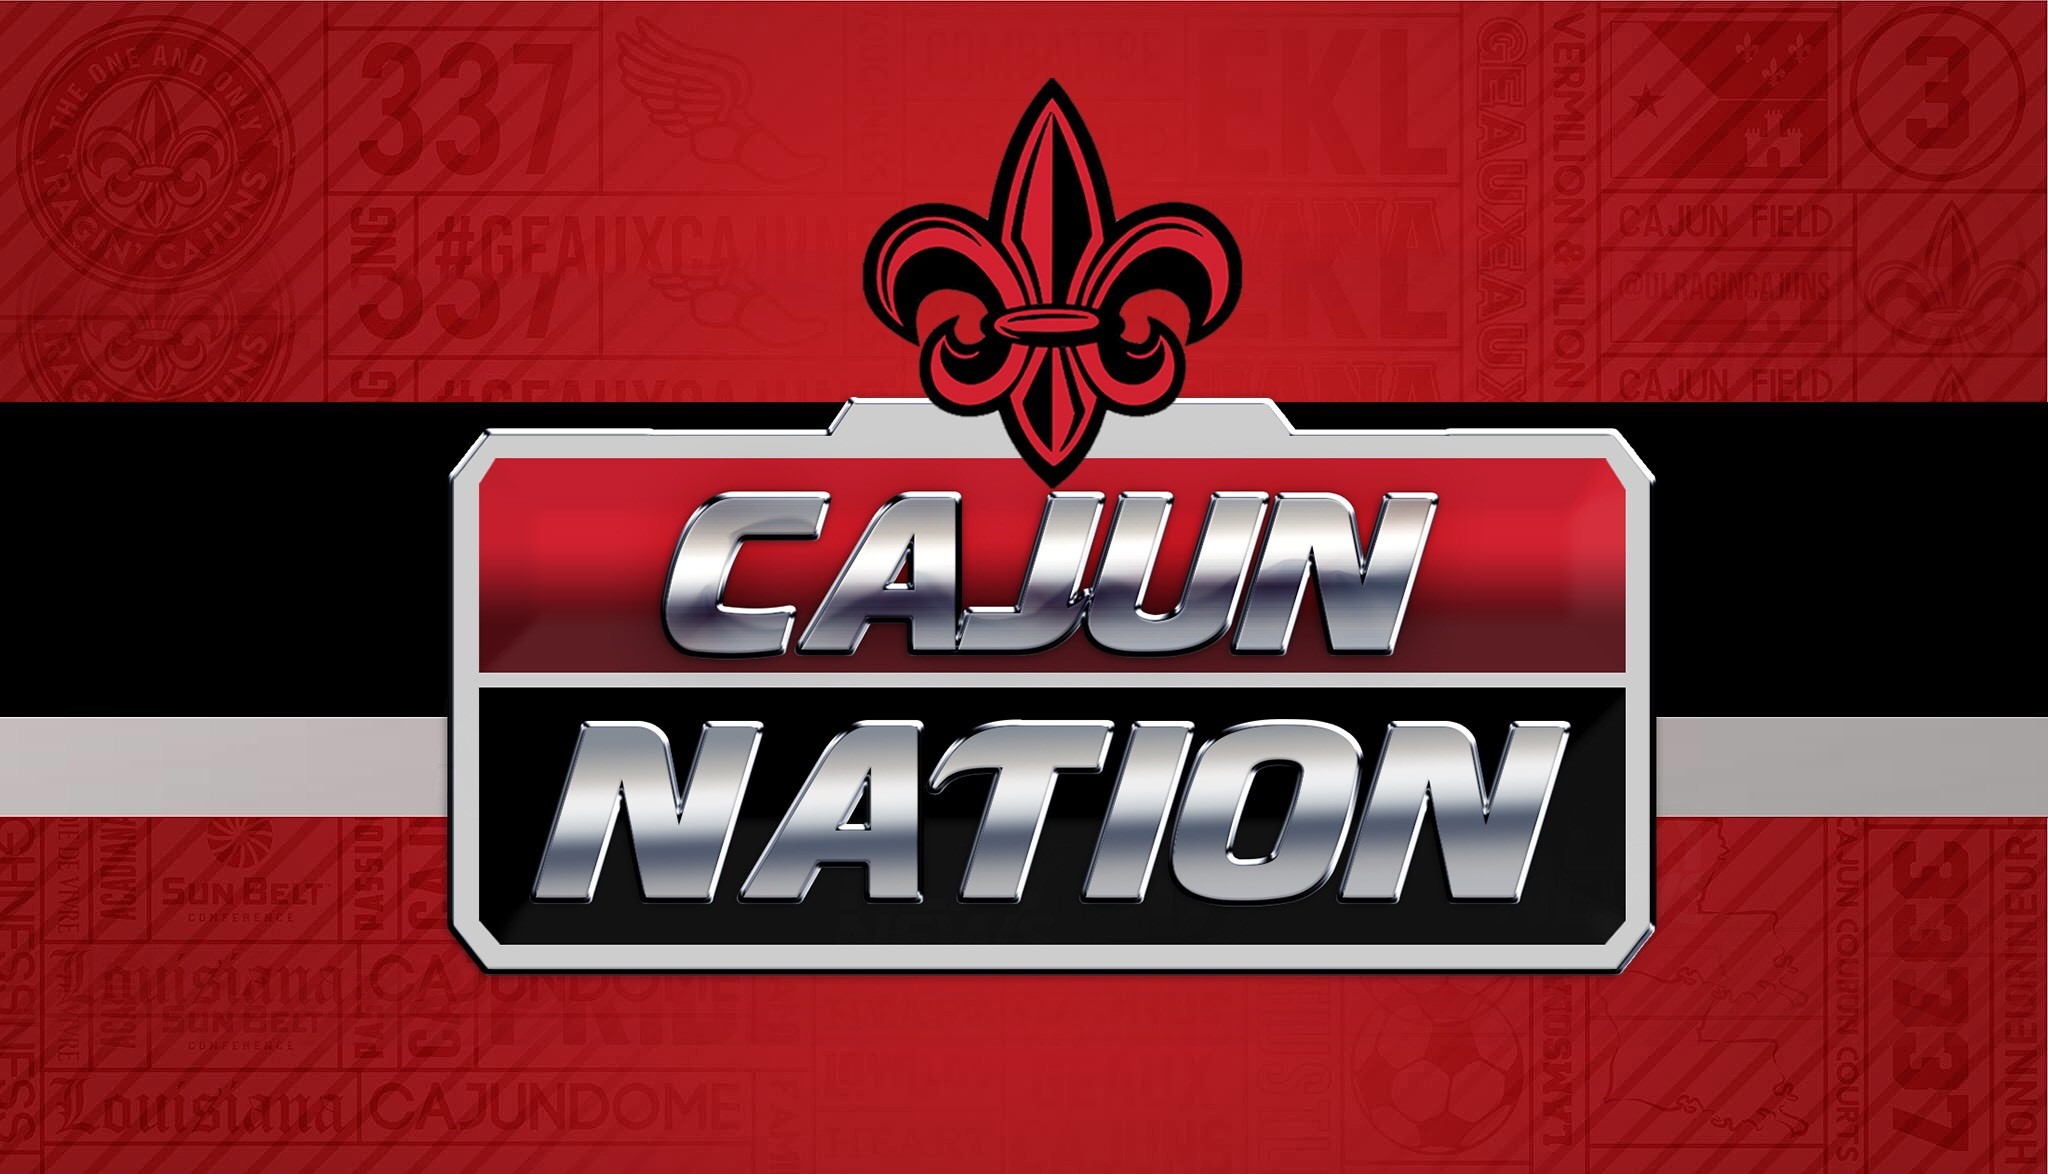 cajun nation logo